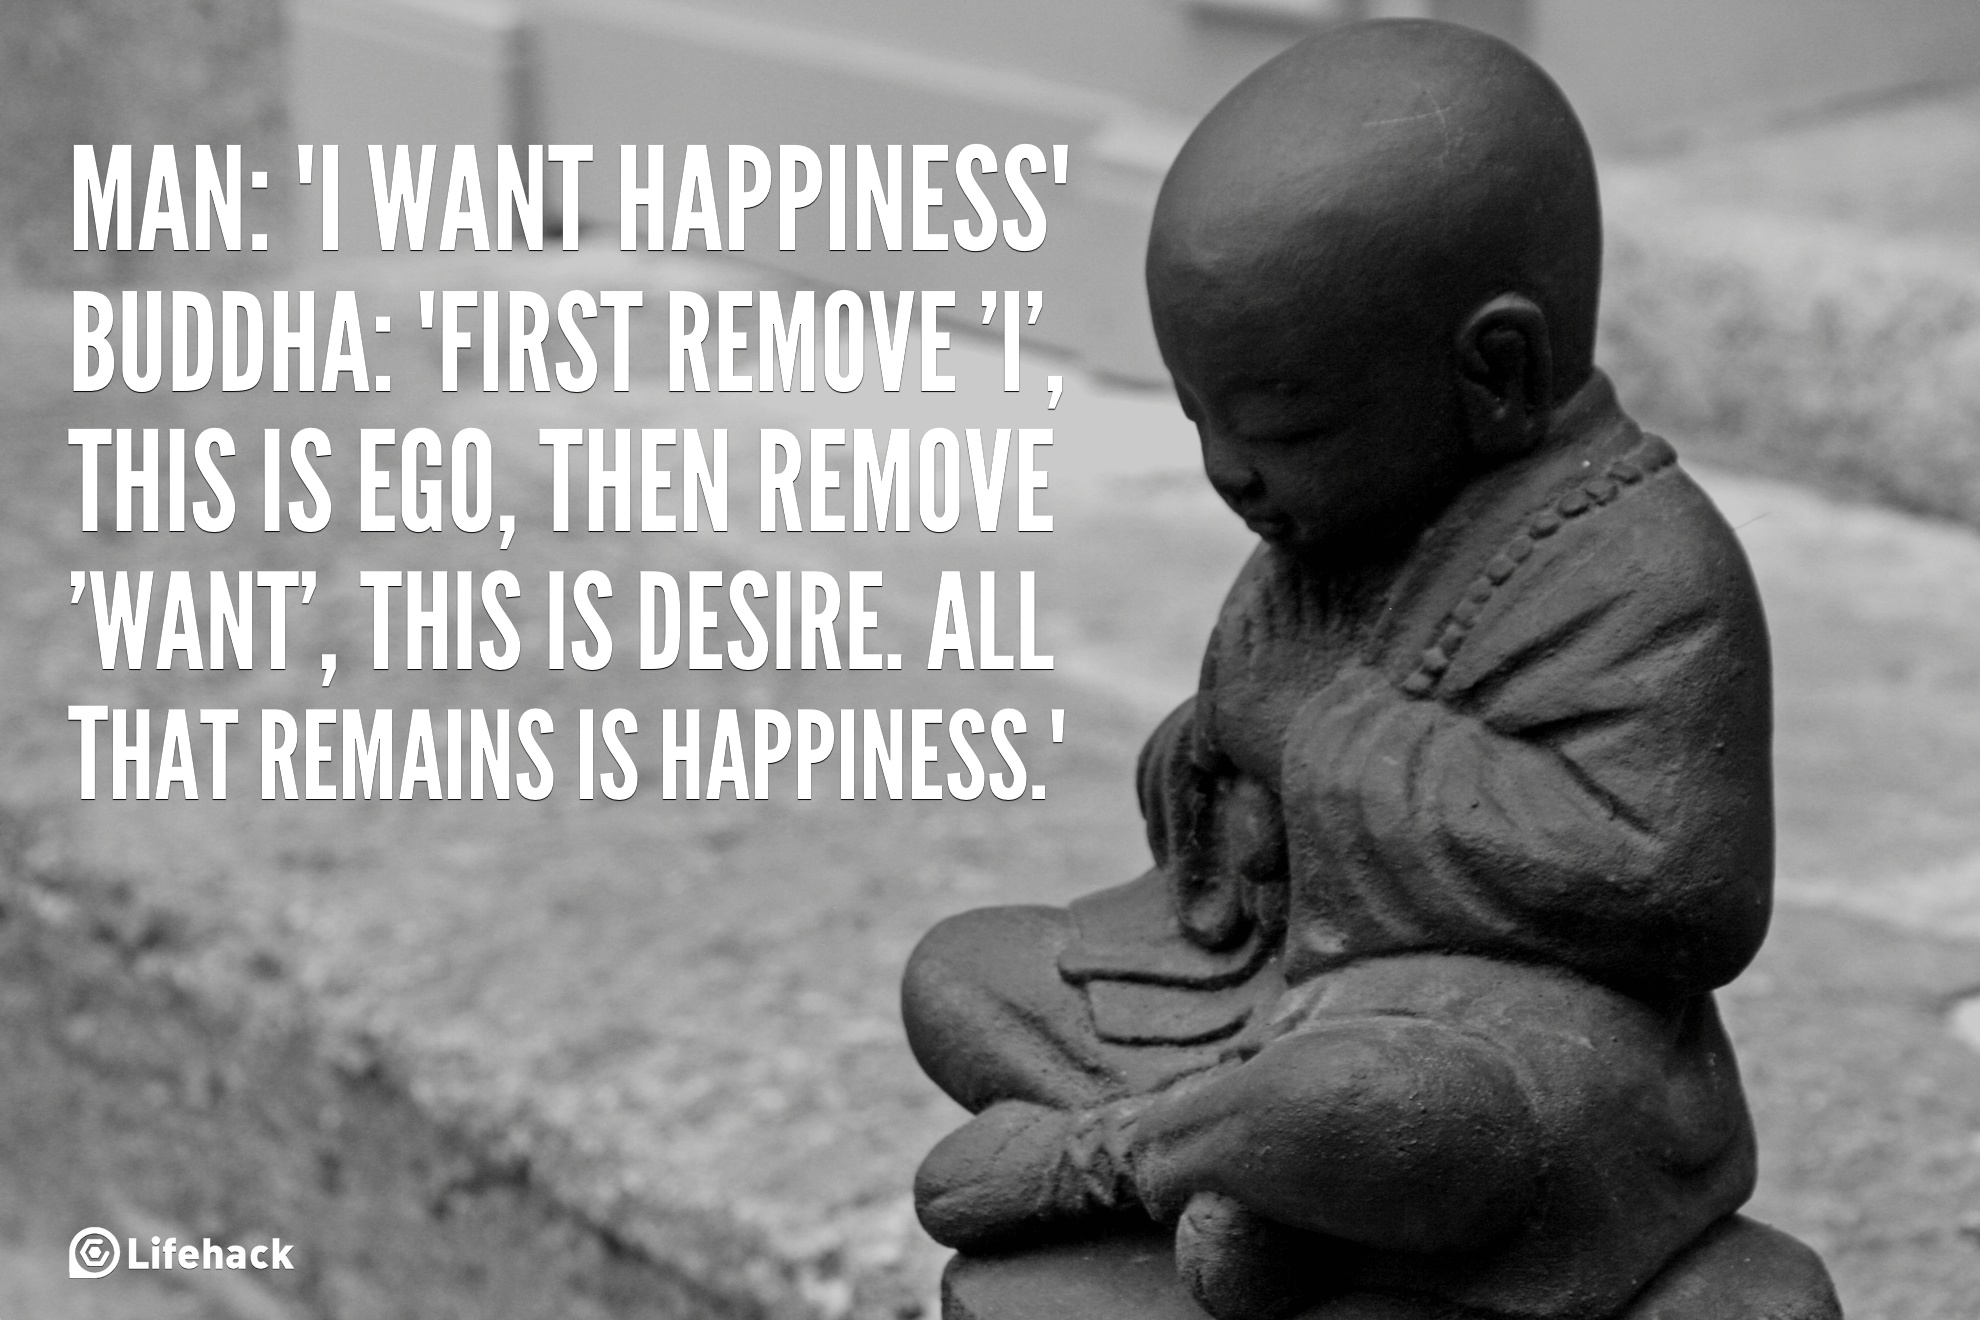 i want happiness, buddha, first remove i, this is ego, then remove want, this is desire, all that remains is happiness